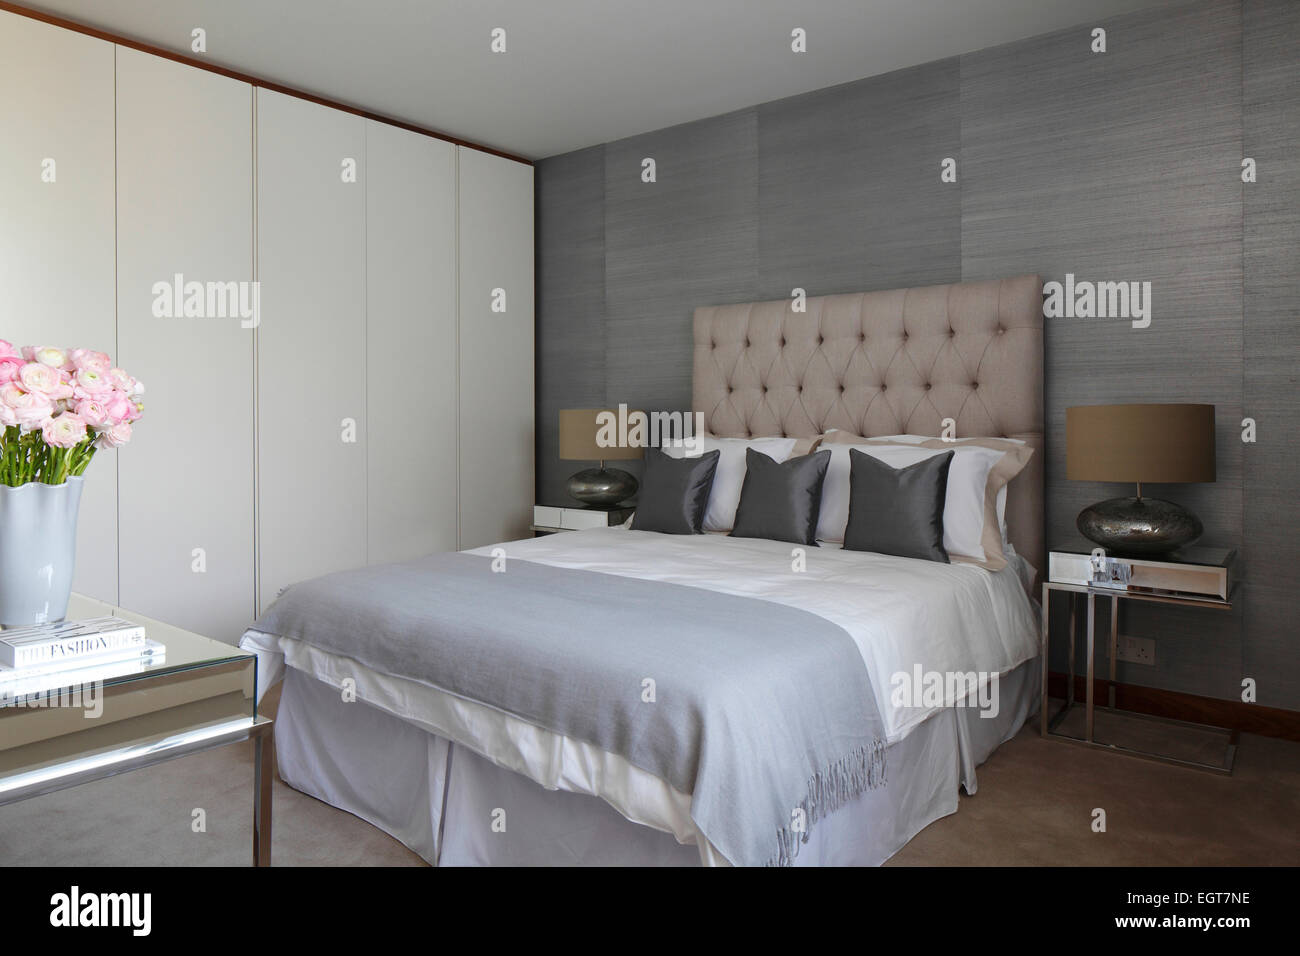 Guest Bedroom In Pale Blue Grey Colour Scheme With Pink Flowers In Uk Stock Photo Alamy